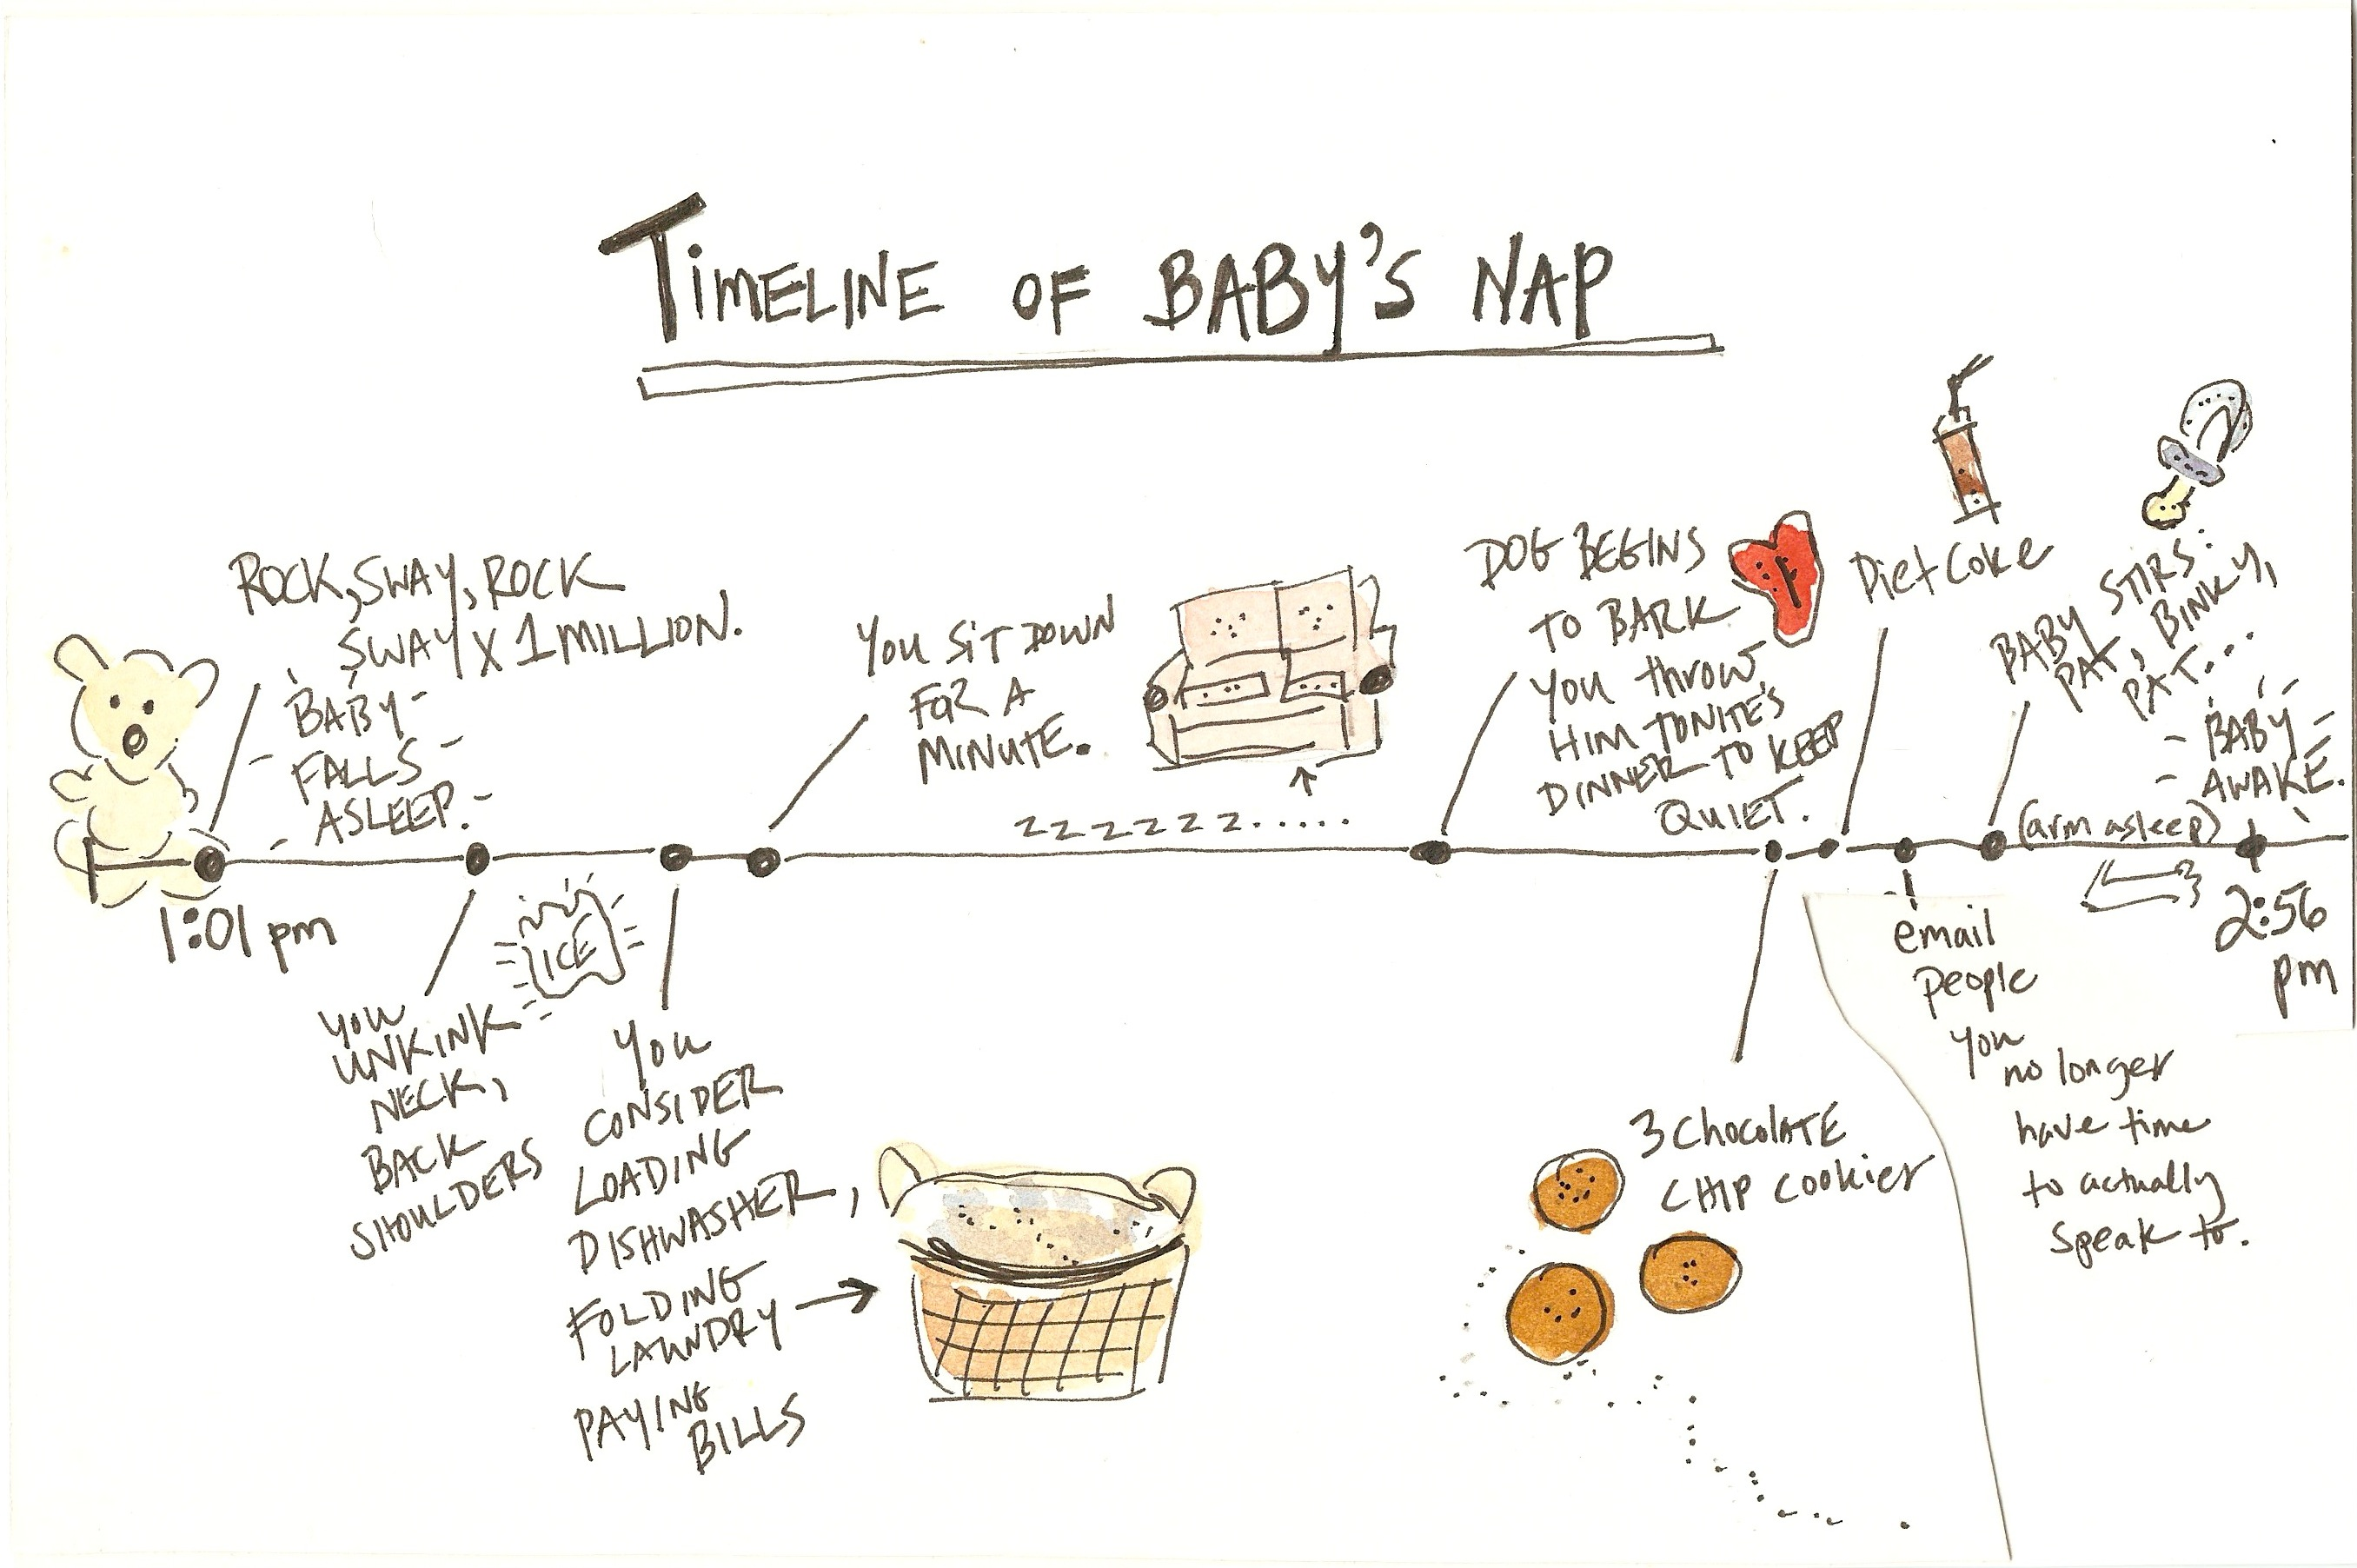 timeline of baby nap